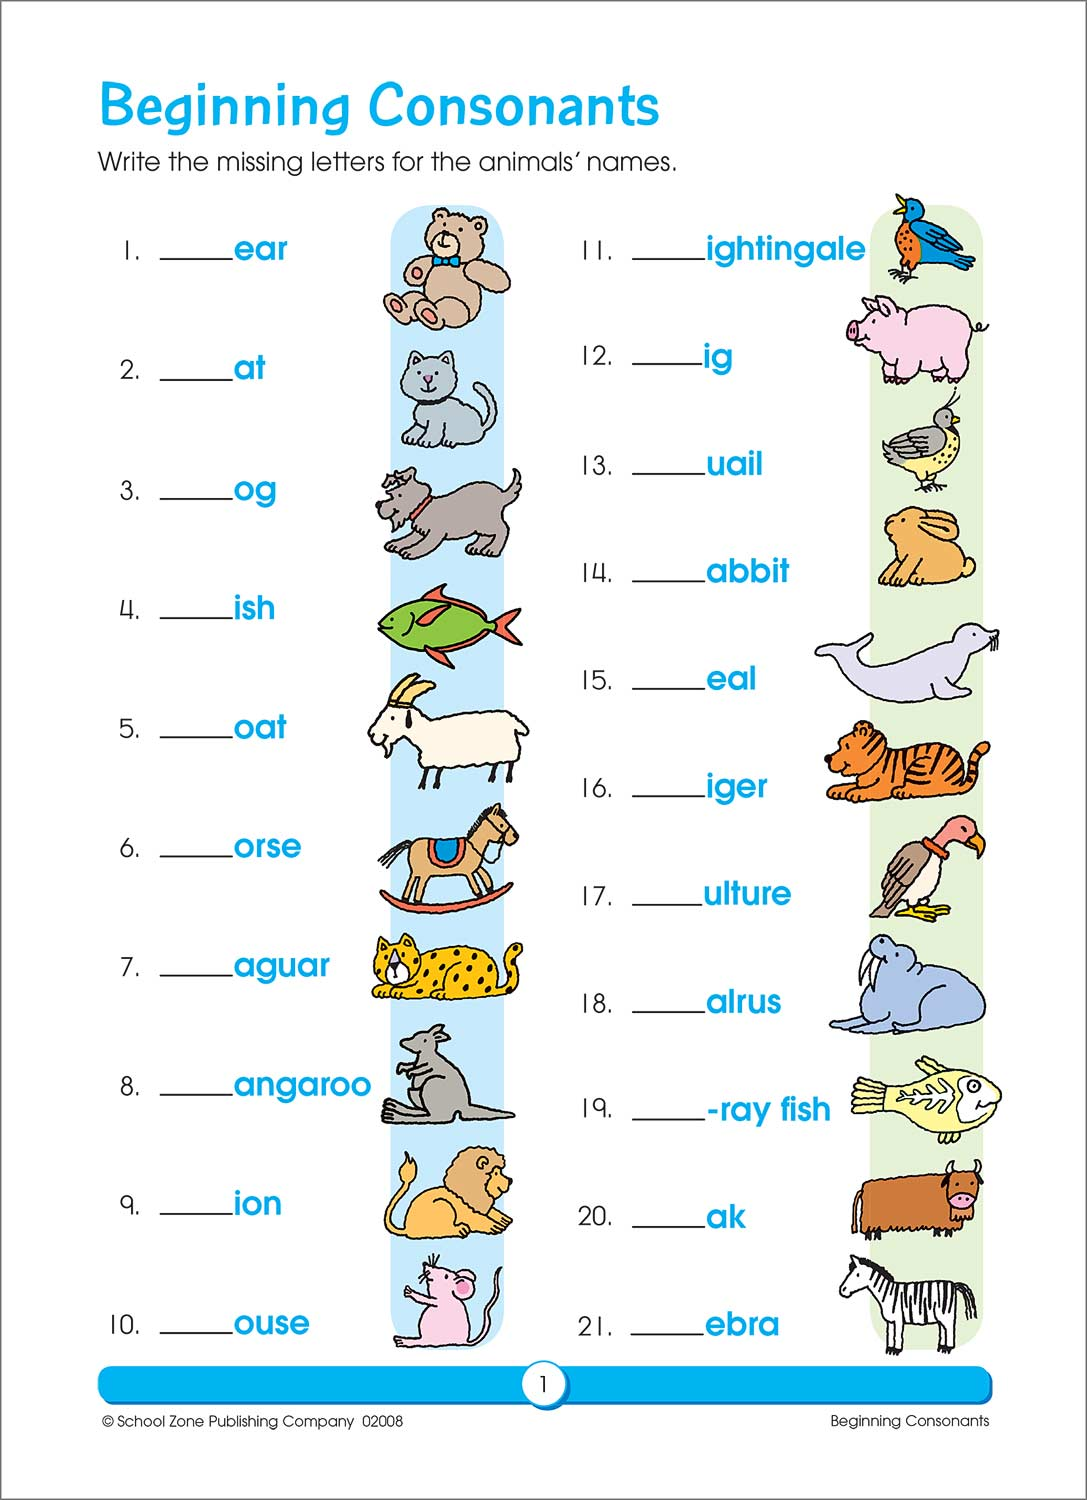 Second and Third Grade Workbooks - Phonics Review - Fun Stuff Toys